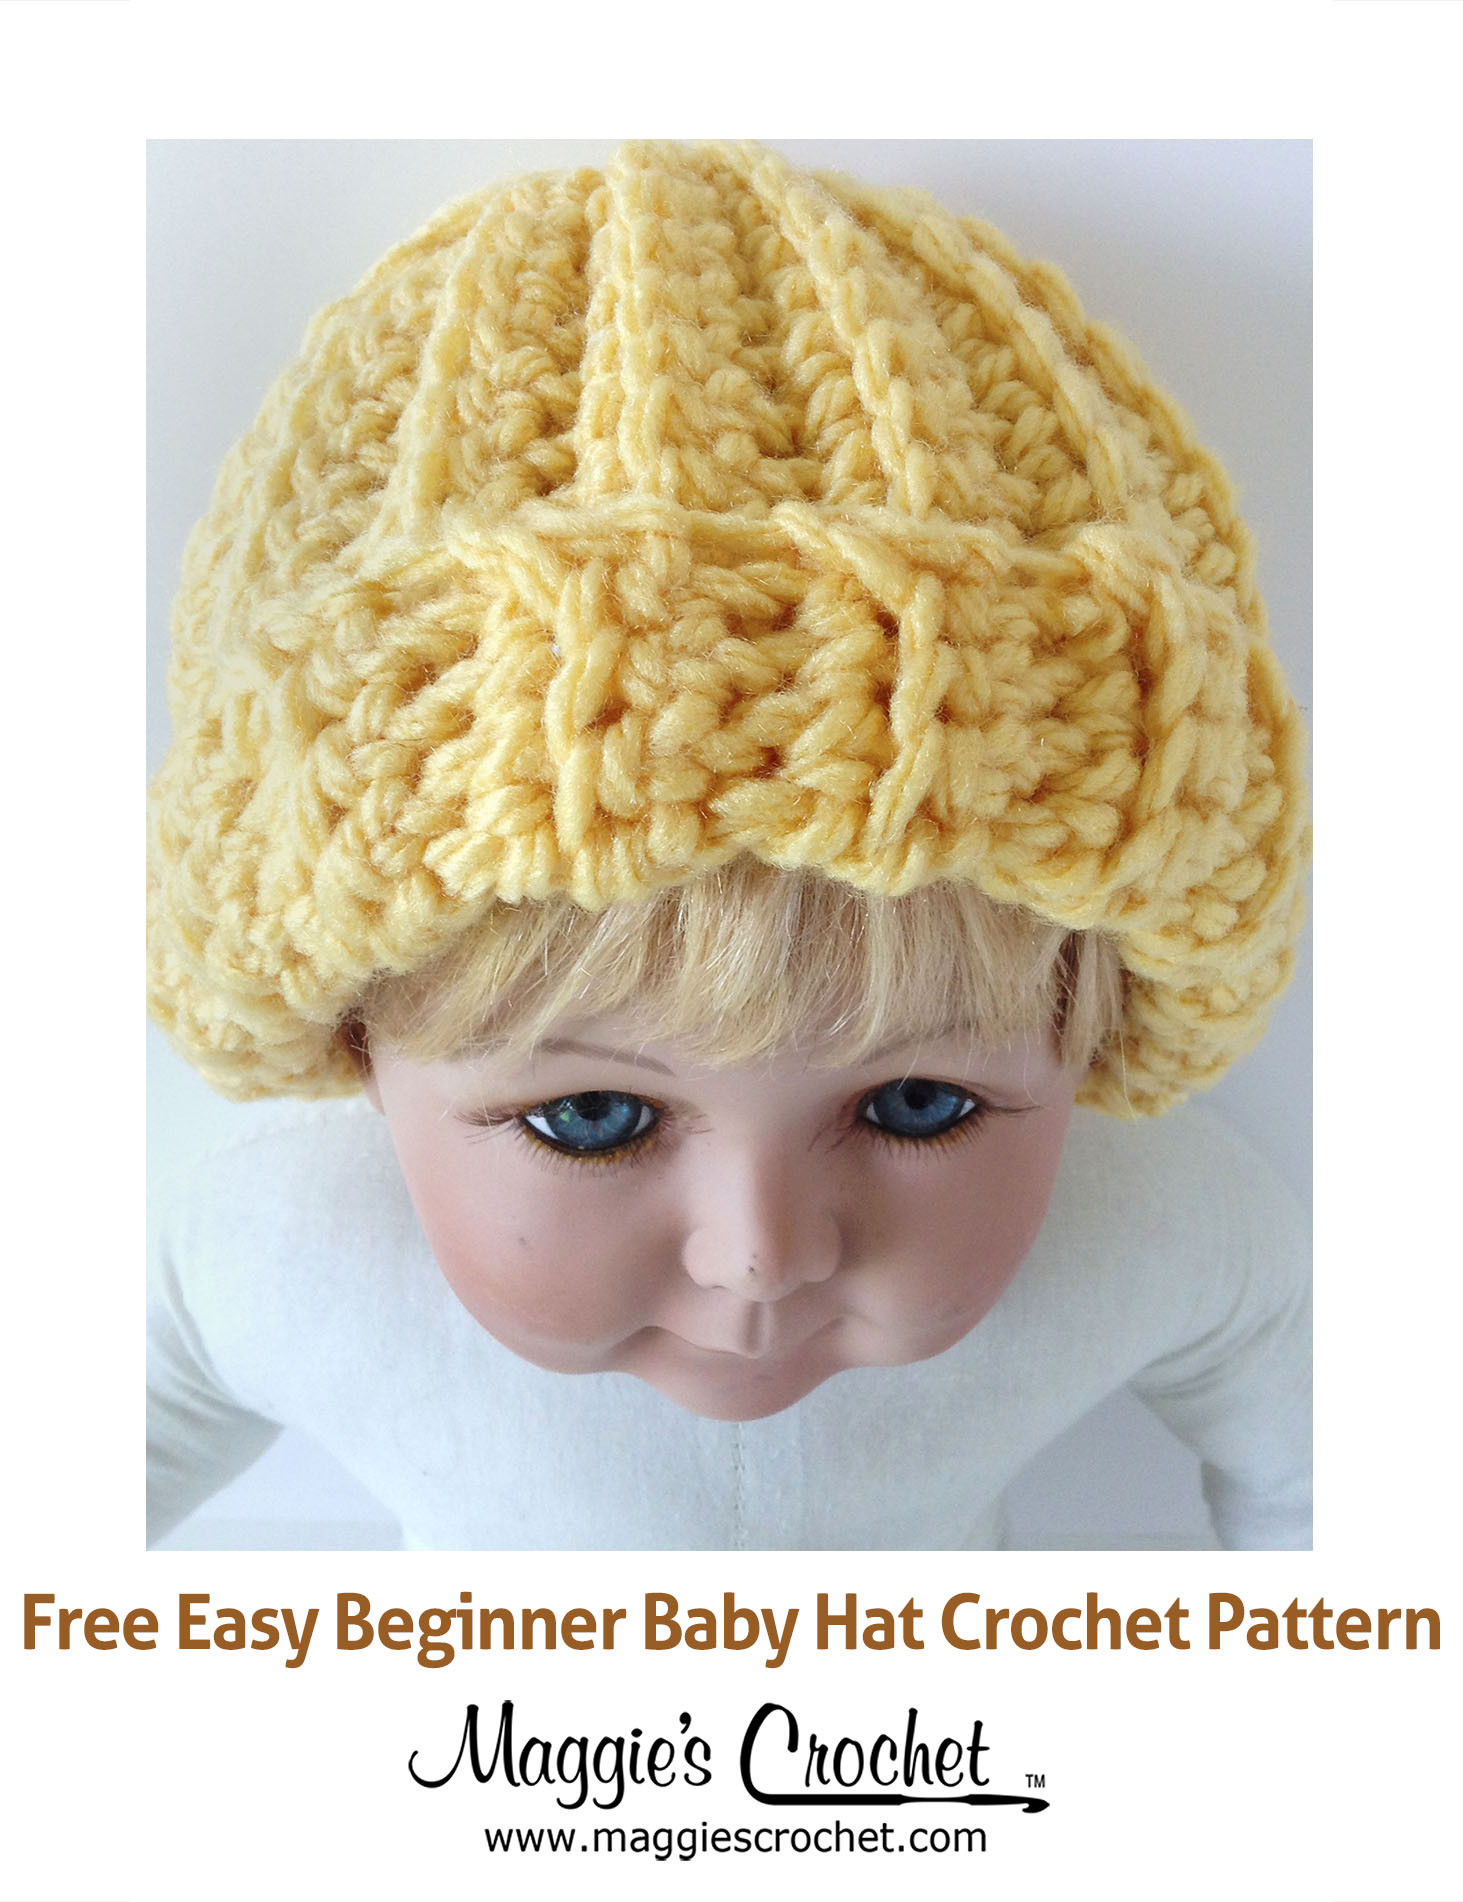 Easy Beginner Baby Hat Free Crochet Pattern Maggie s